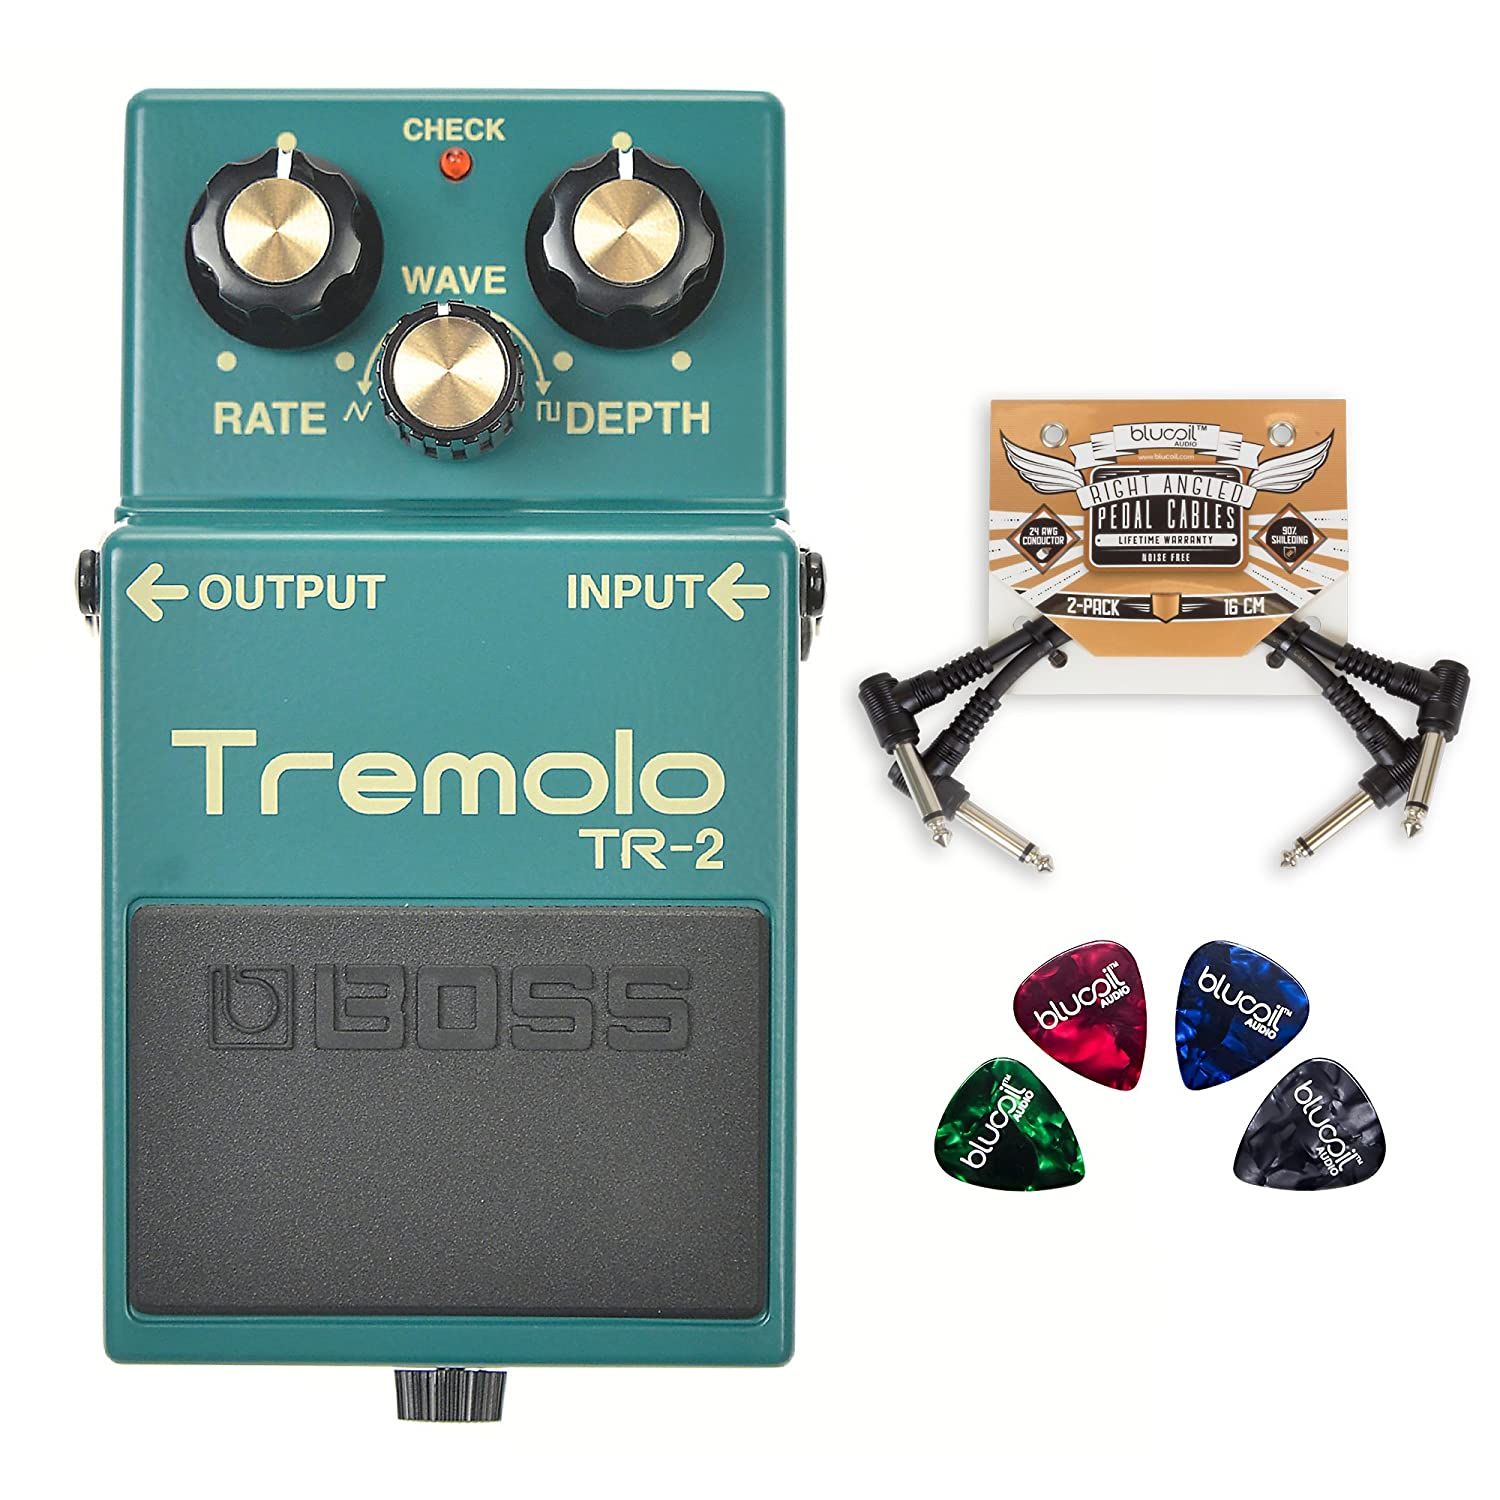 Boss Tr 2 Tremolo Pedal With Wave Control Includes Effect Circuit Using Ua741 Pack Of Blucoil Patch Cables And 4 Guitar Picks Musical Instruments